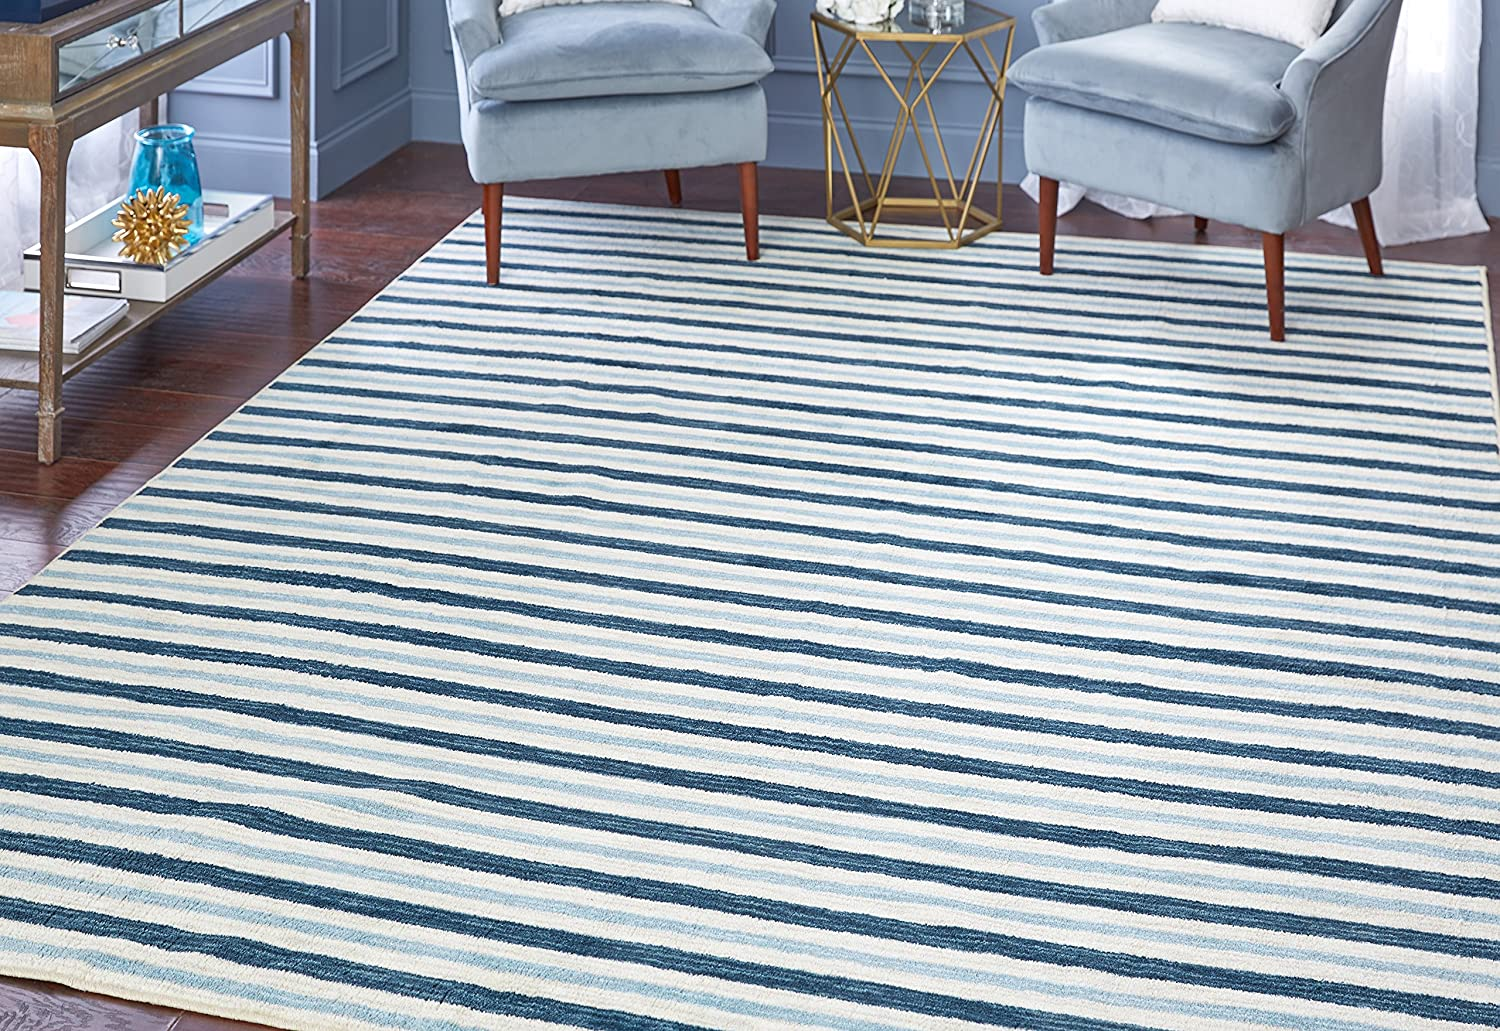 Mohawk Home Naples Monterey Striped Printed Area Rug, 7'6x10', Blue